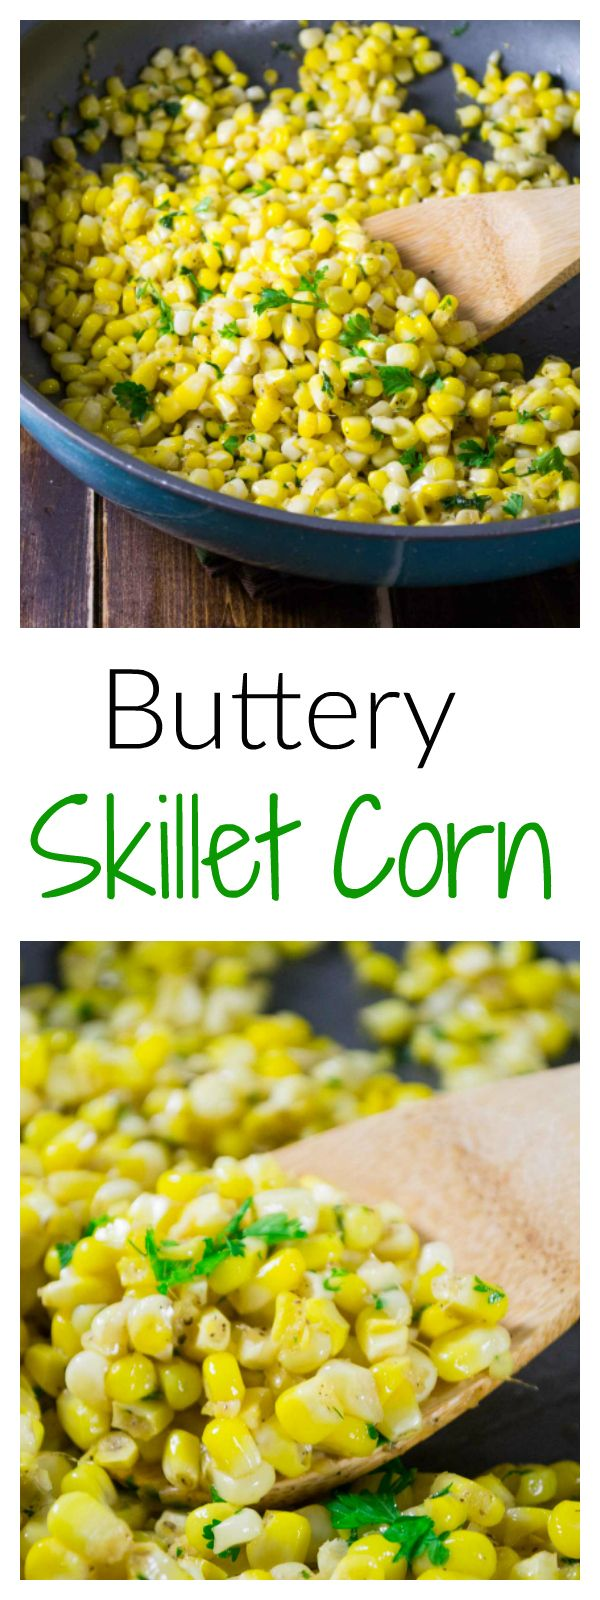 buttery skillet corn